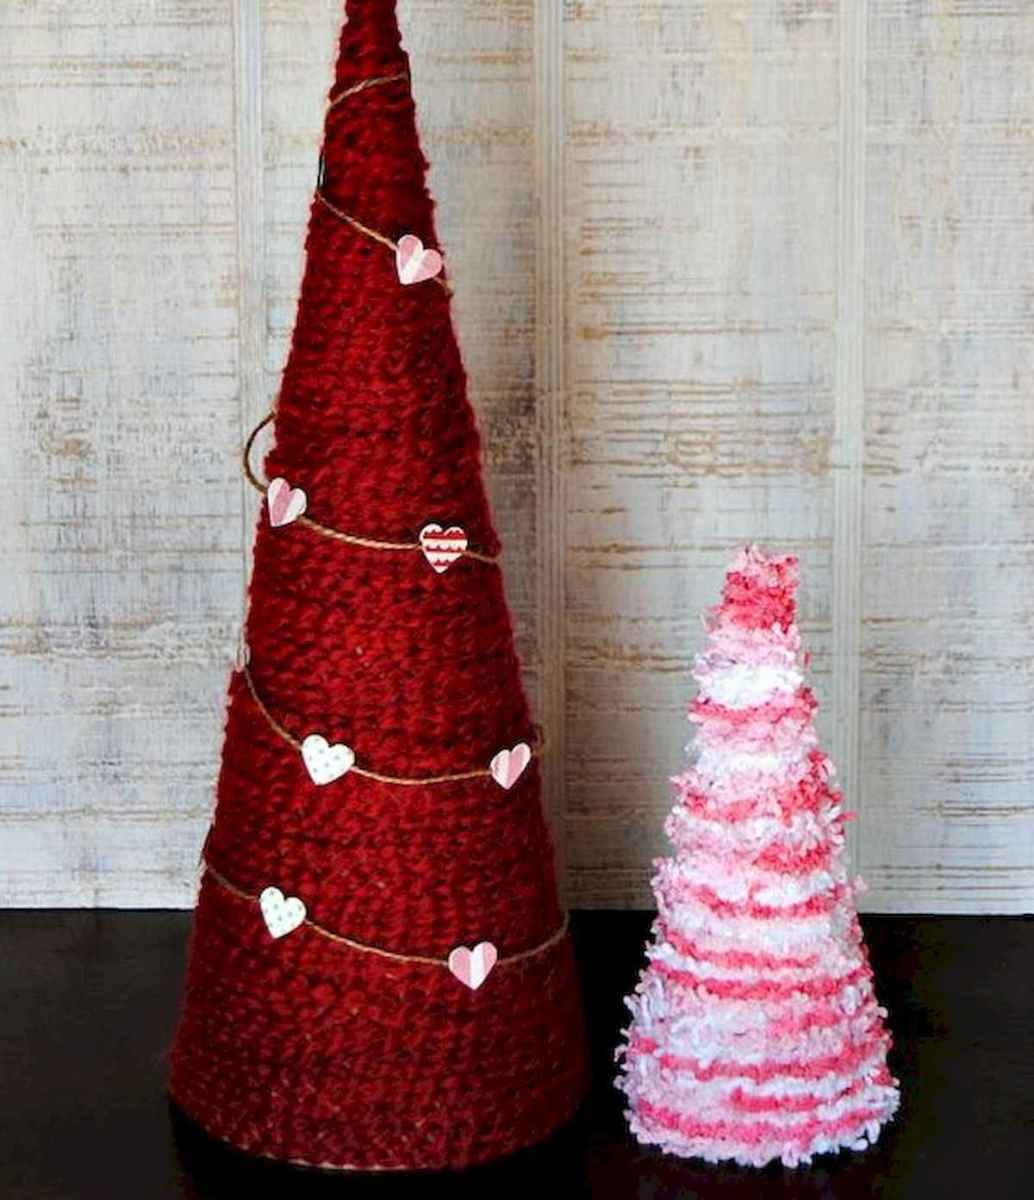 110 easy diy valentines decorations ideas and remodel (102)